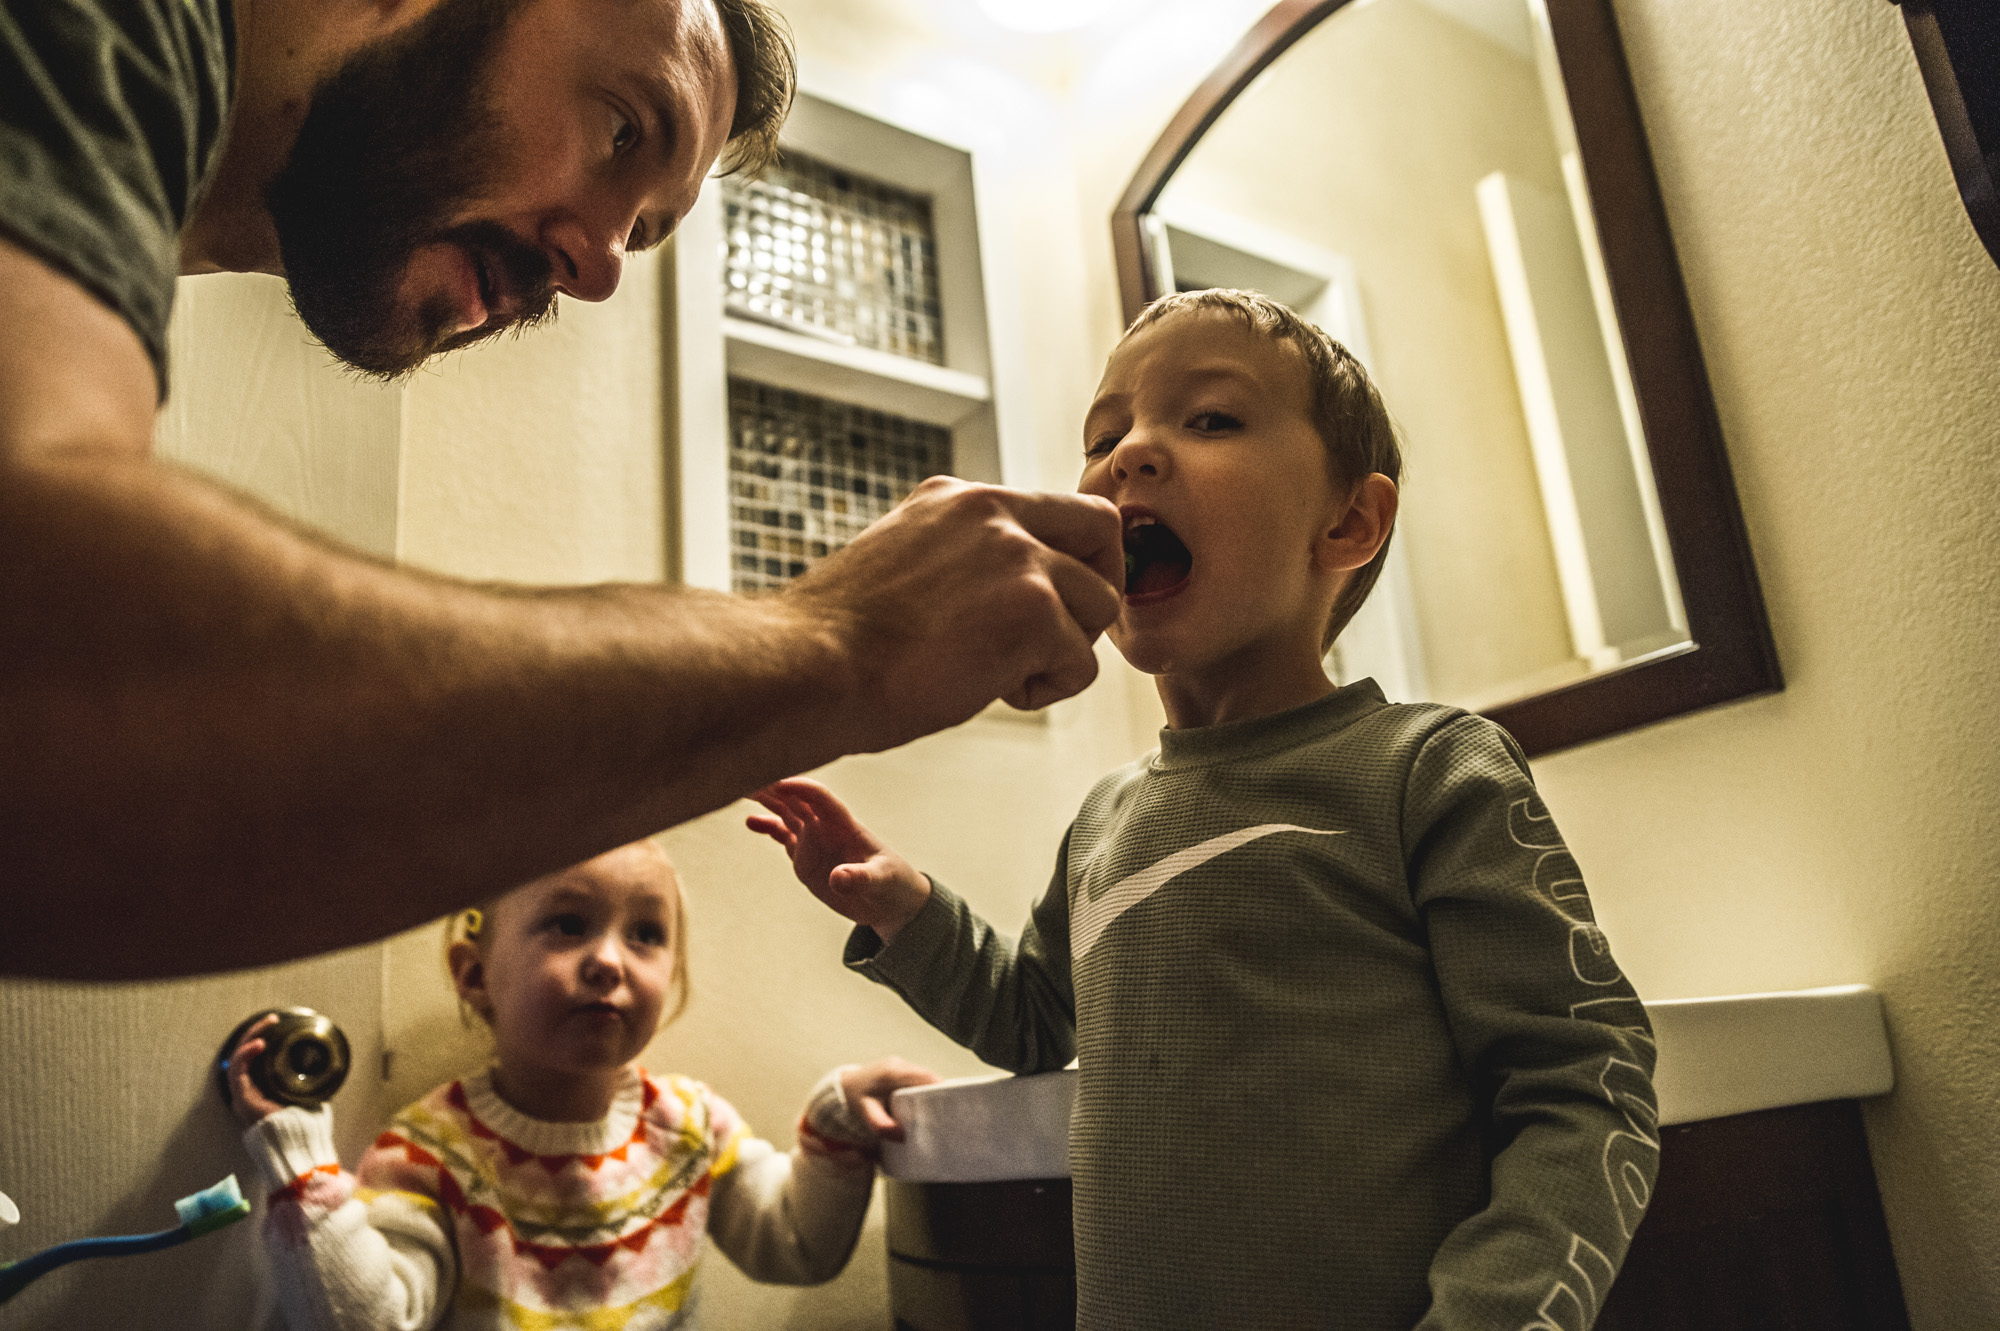 Father leans over to brush his young son's teeth as their young daughter looks on, color, Denver, Colorado